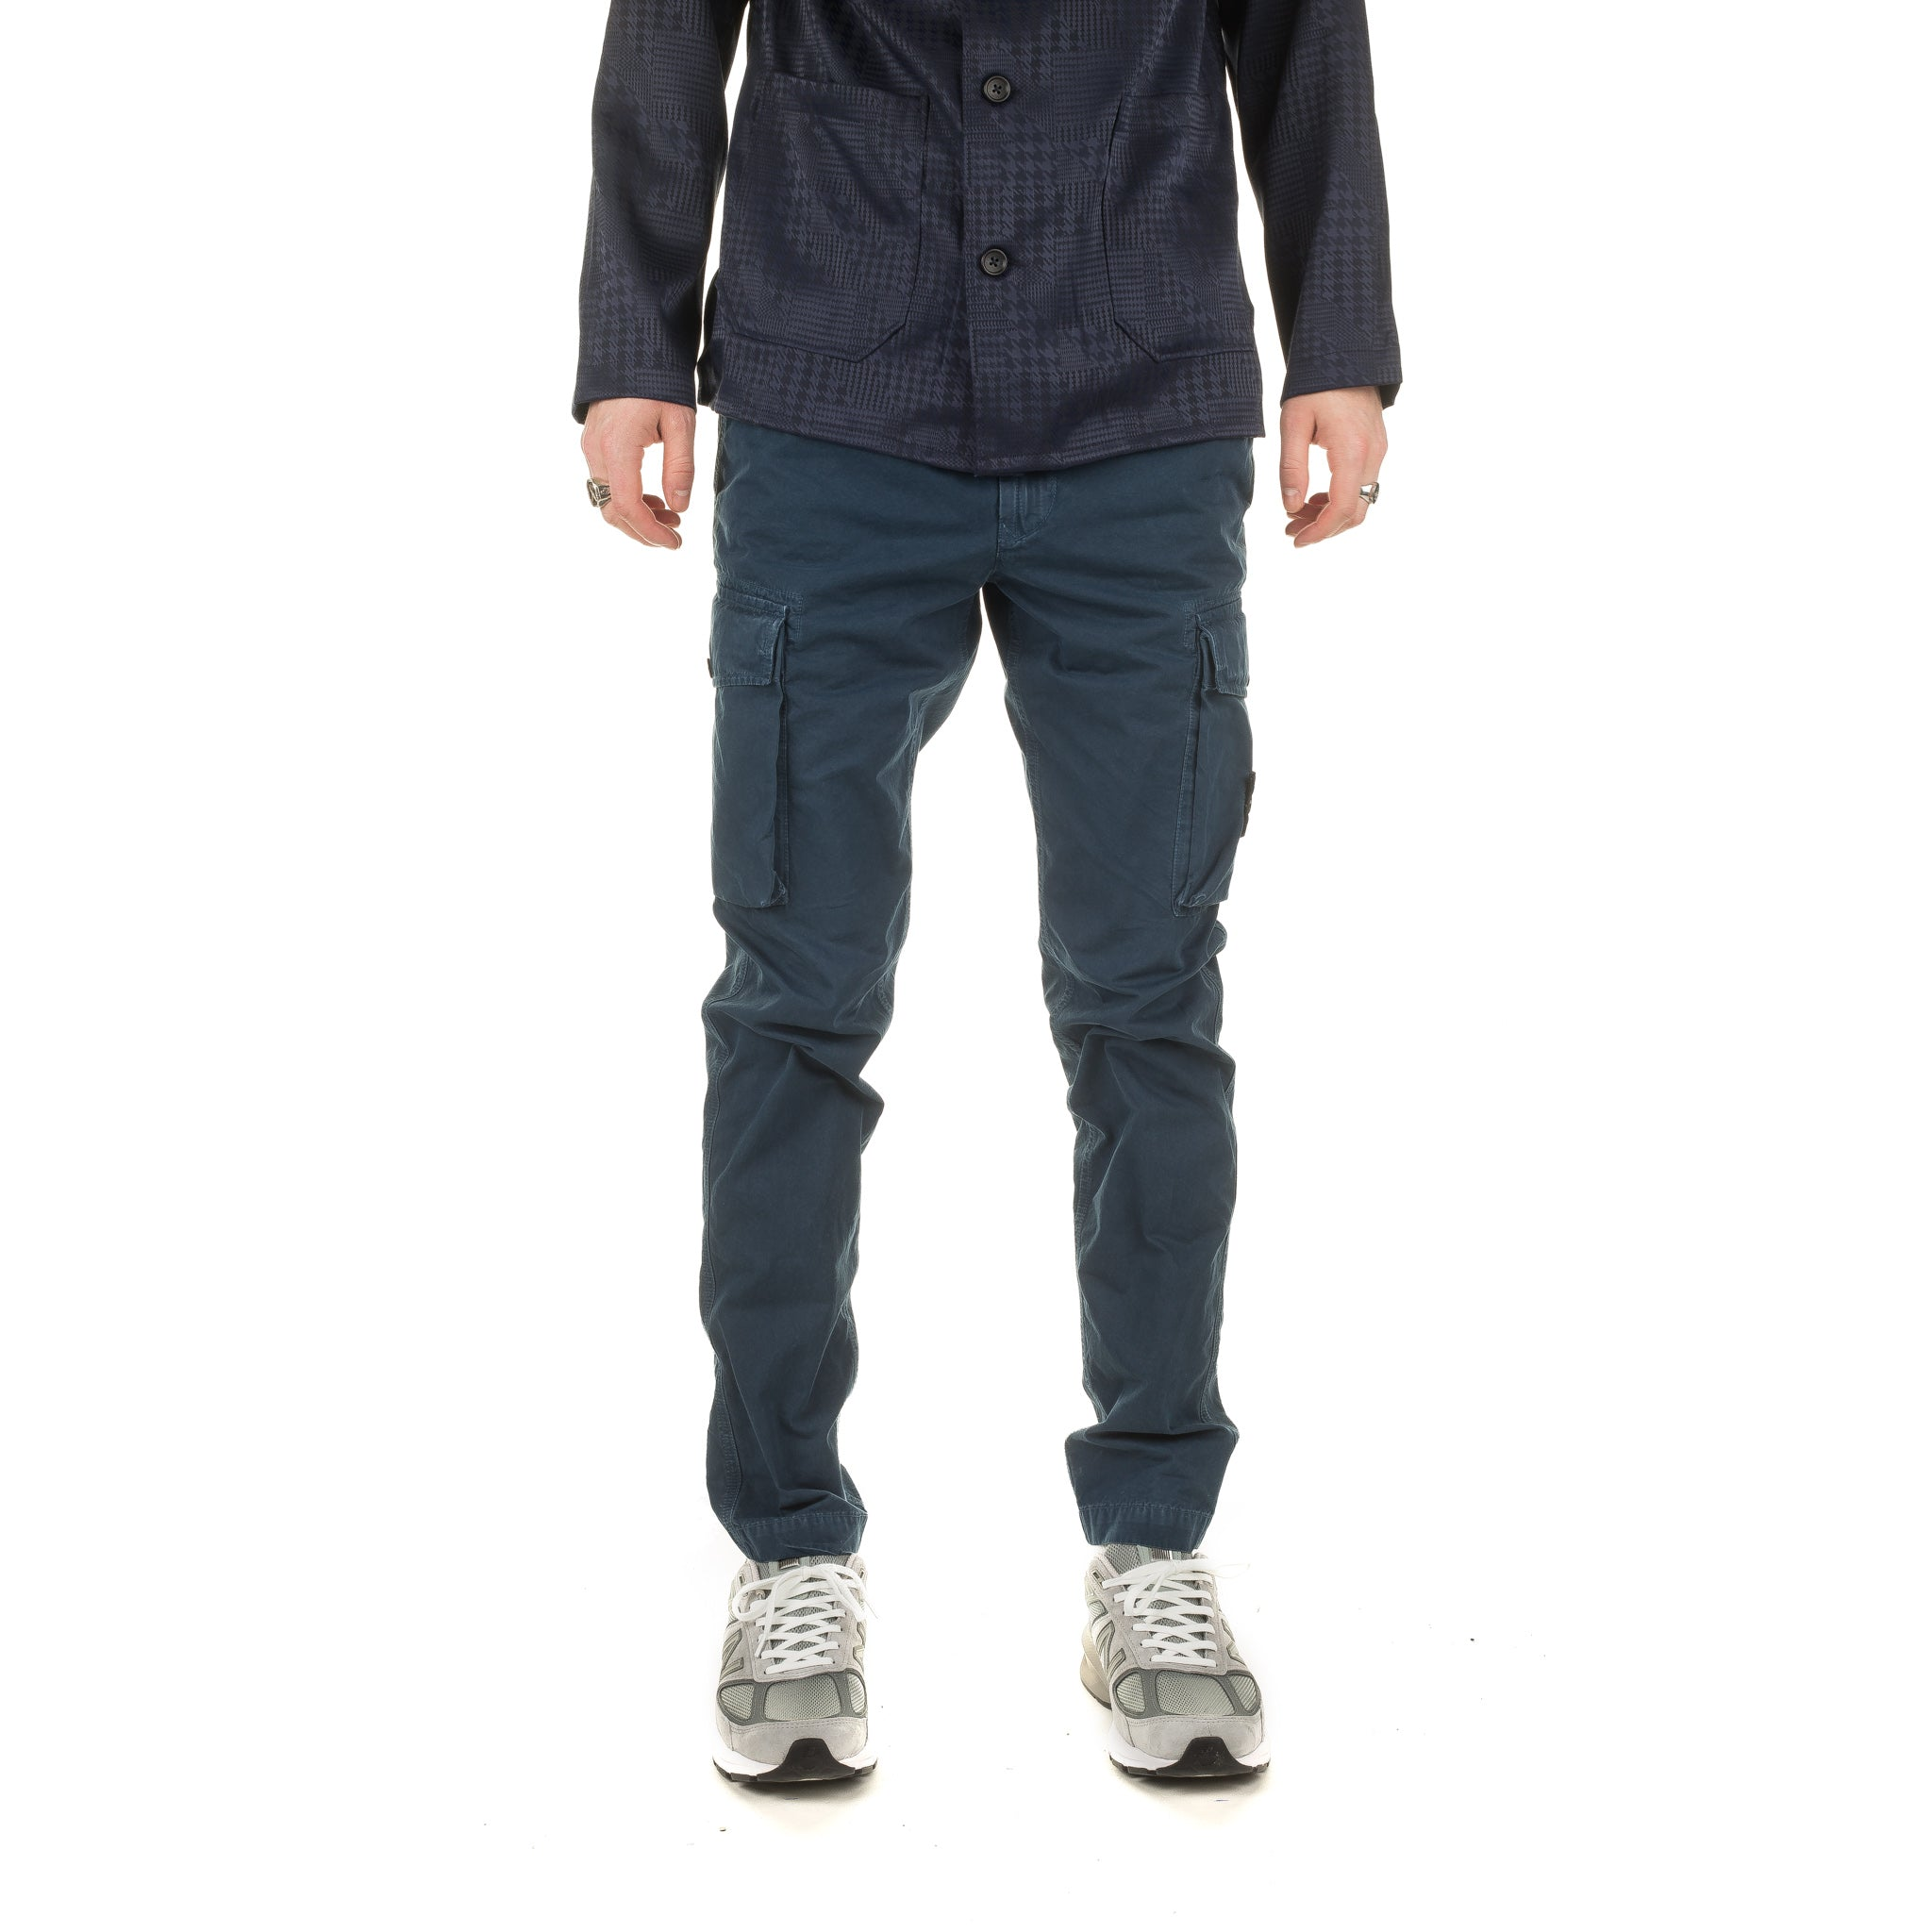 T.CO+OLD Cargo Pants 7215318WA Navy